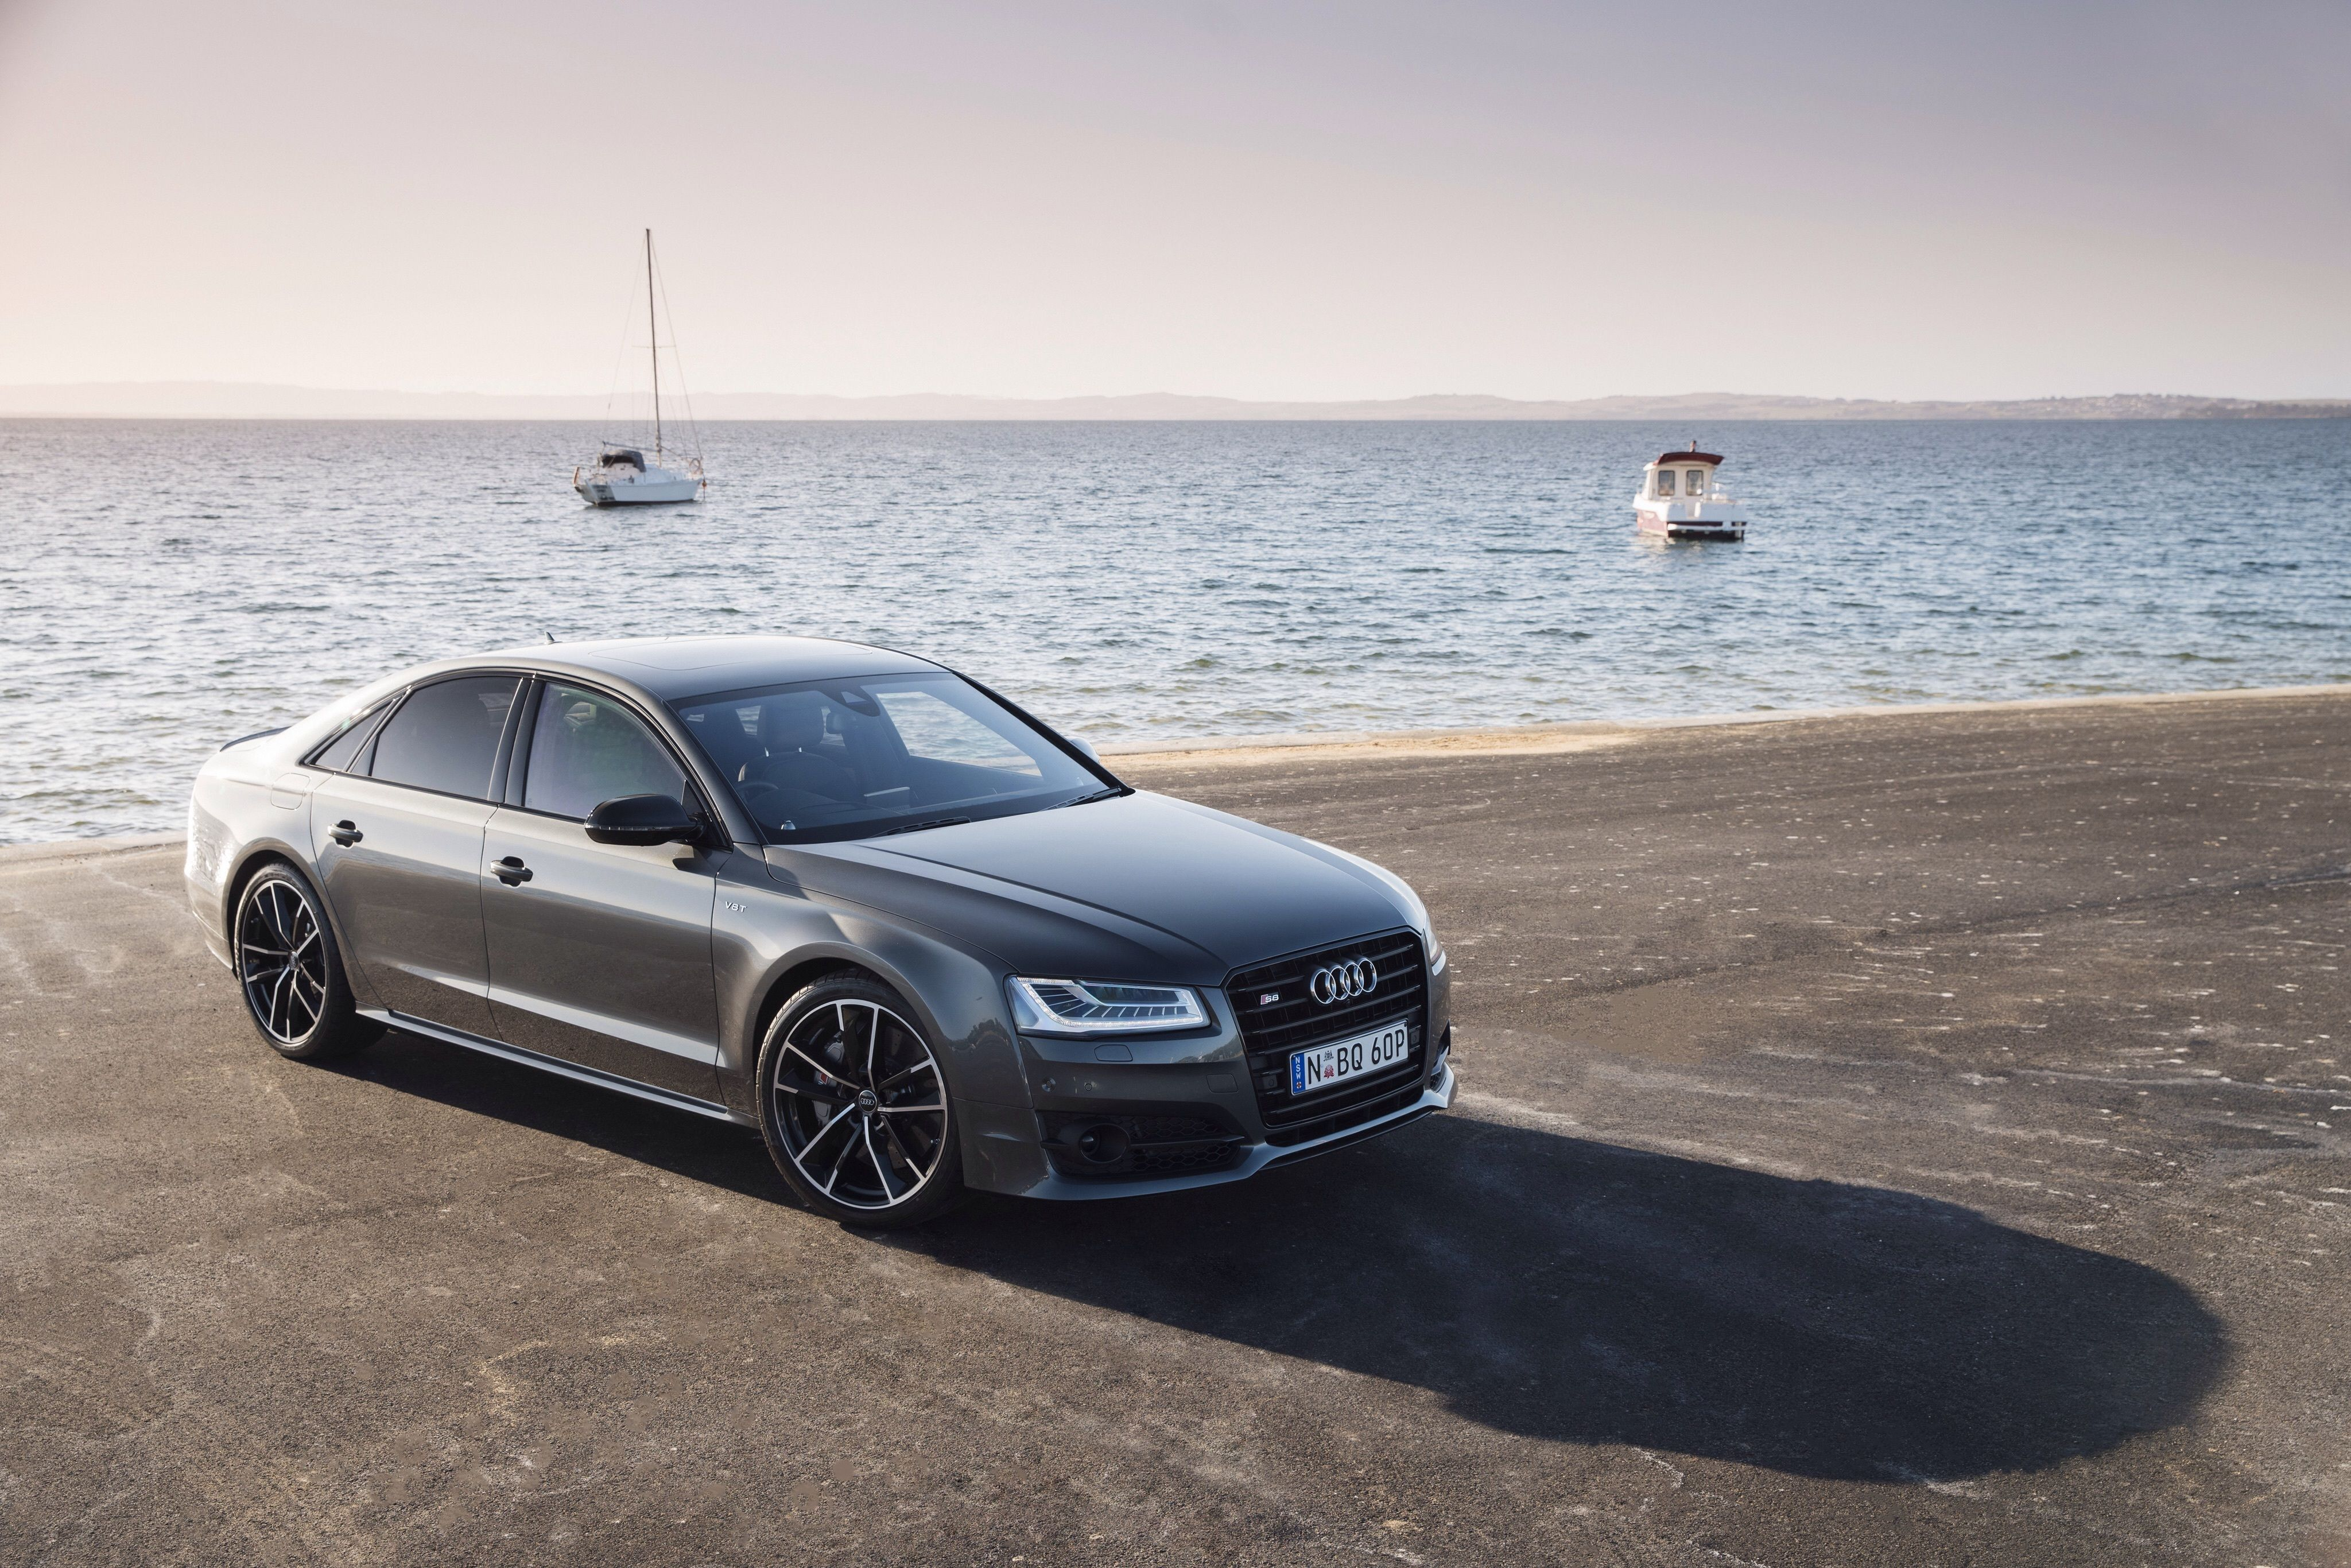 Wallpapers Audi, S8, Side view, Sea HD, Picture, Image